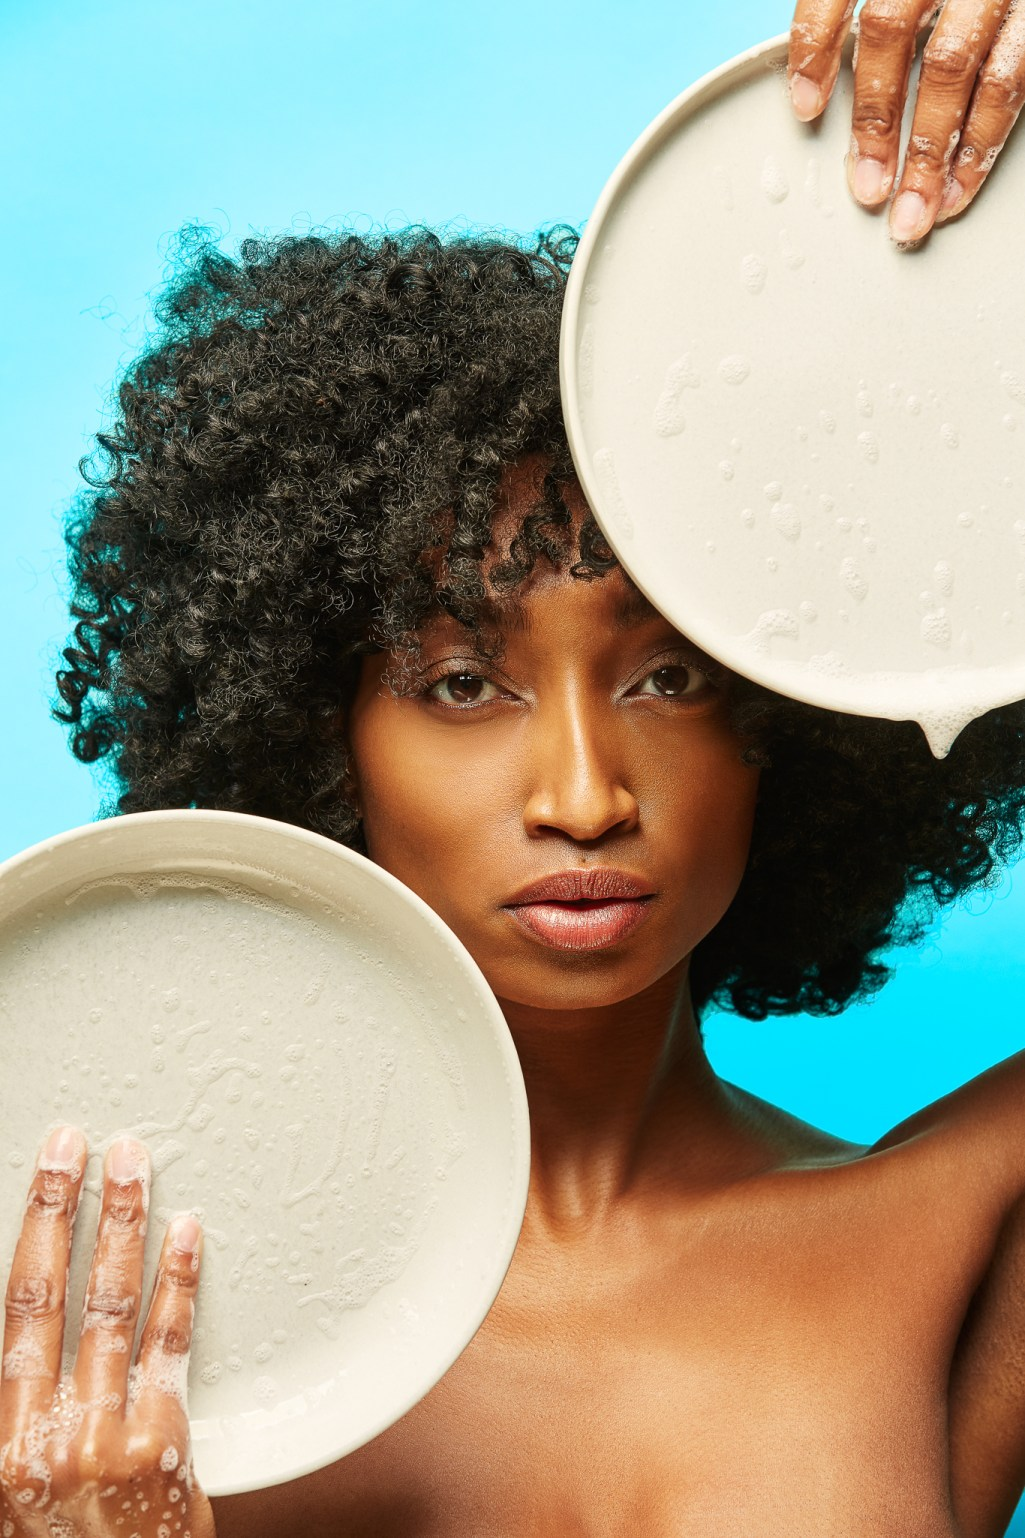 Conceptual portrait of model holding soapy dish by San Francisco photographer Ella Sophie